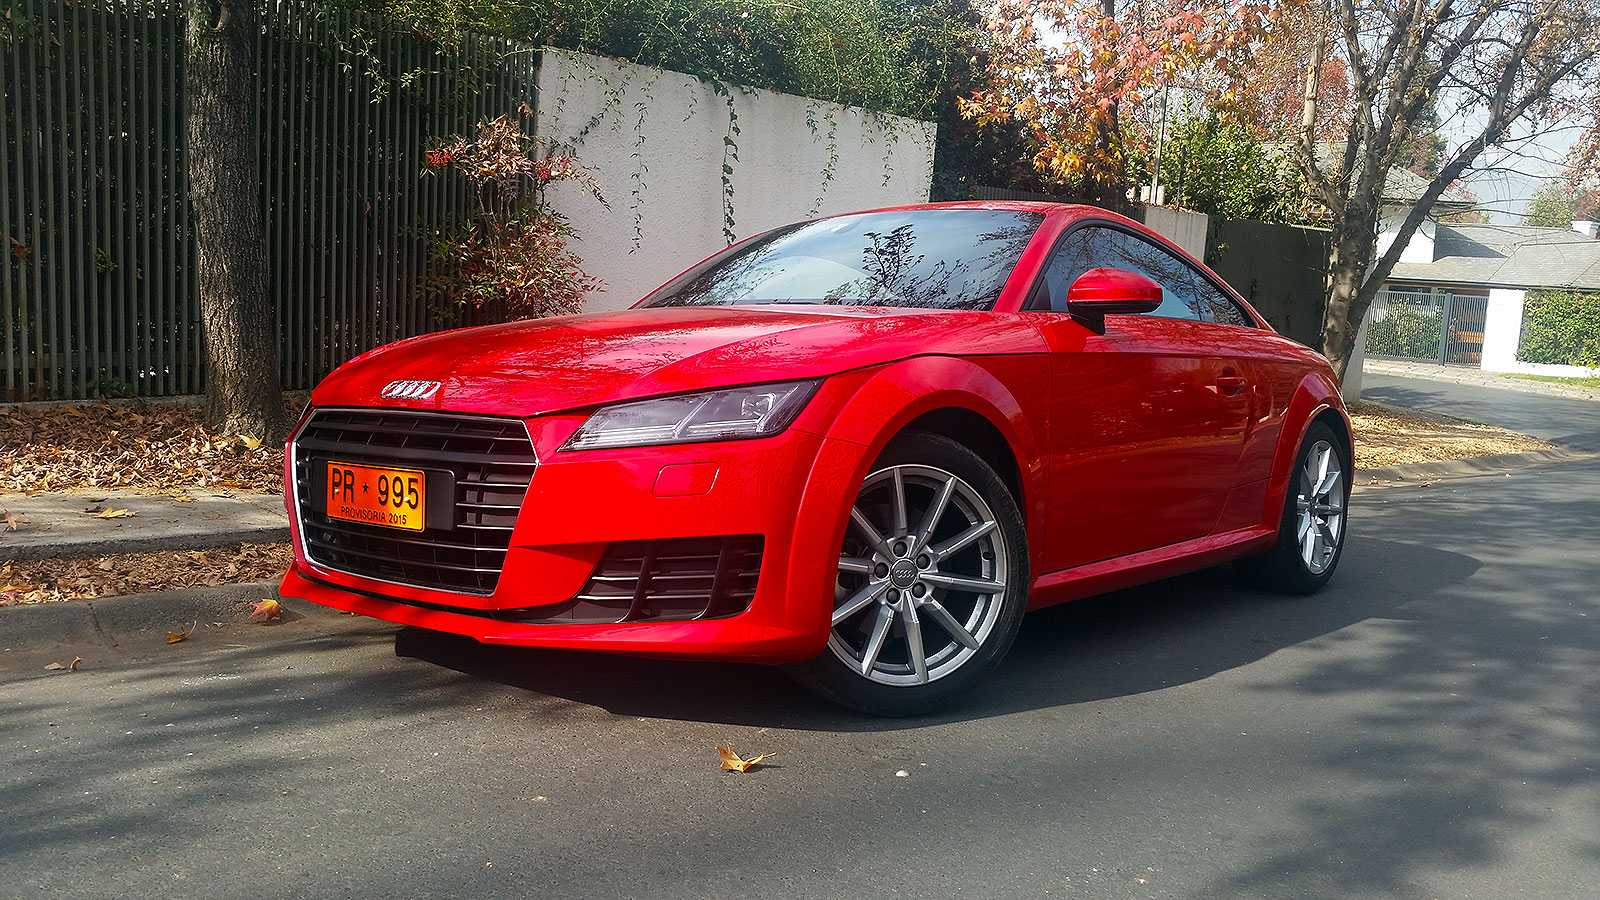 audi tt 2 0 tfsi 230 cv stronic coup 2015 test drive. Black Bedroom Furniture Sets. Home Design Ideas